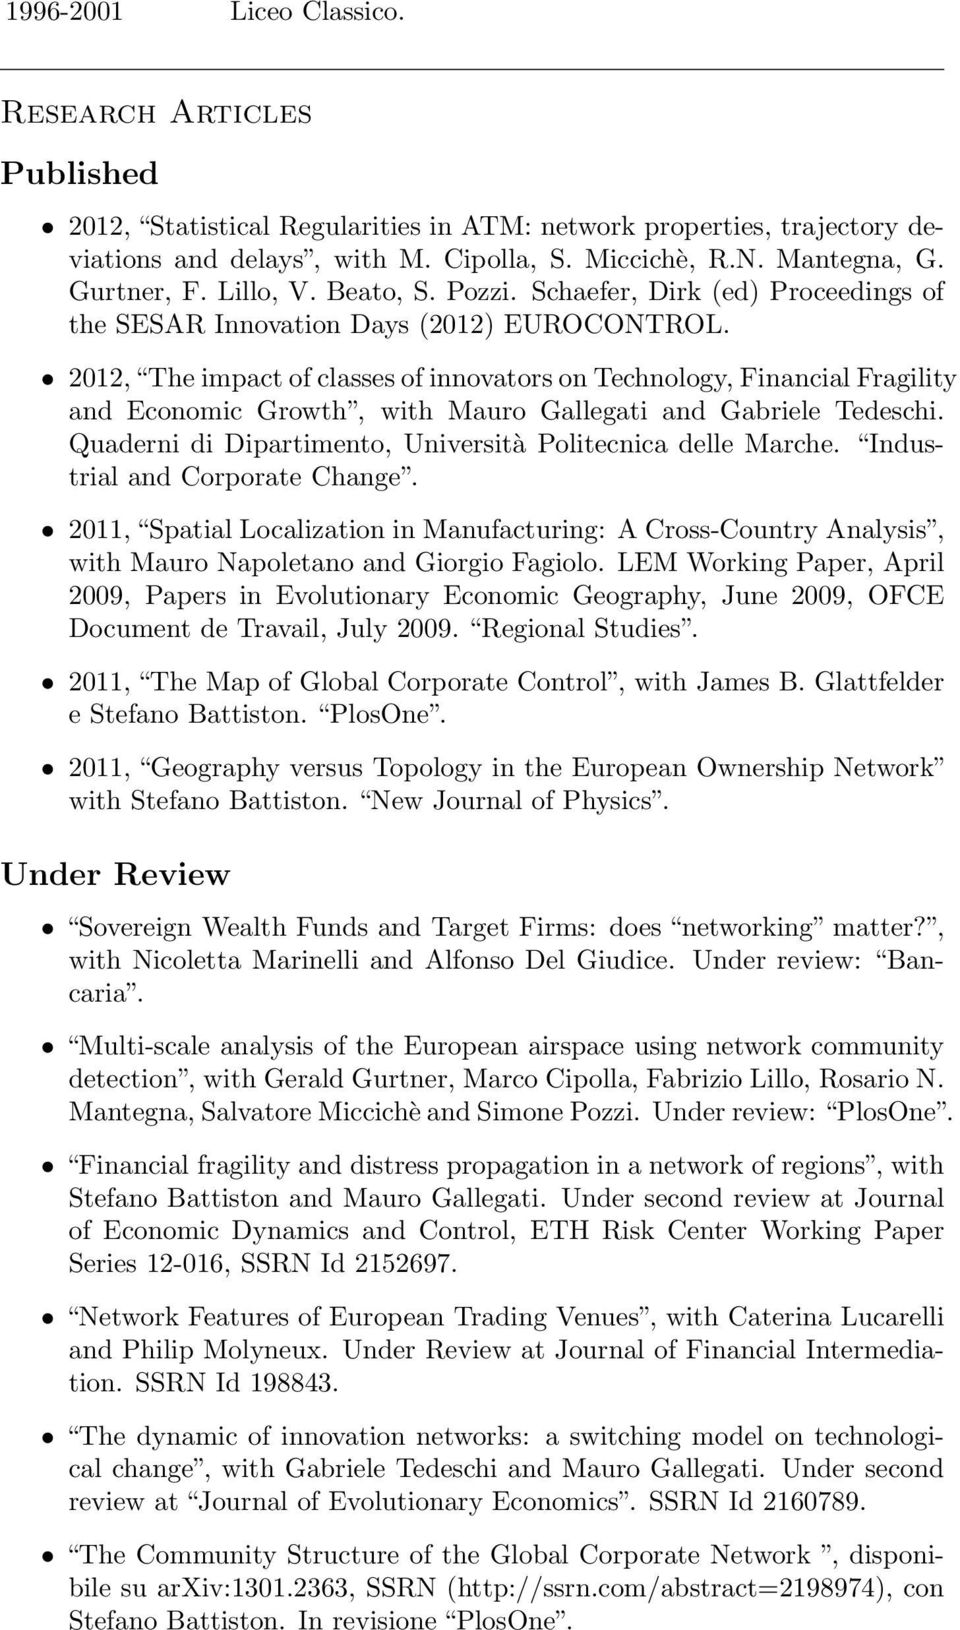 2012, The impact of classes of innovators on Technology, Financial Fragility and Economic Growth, with Mauro Gallegati and Gabriele Tedeschi.